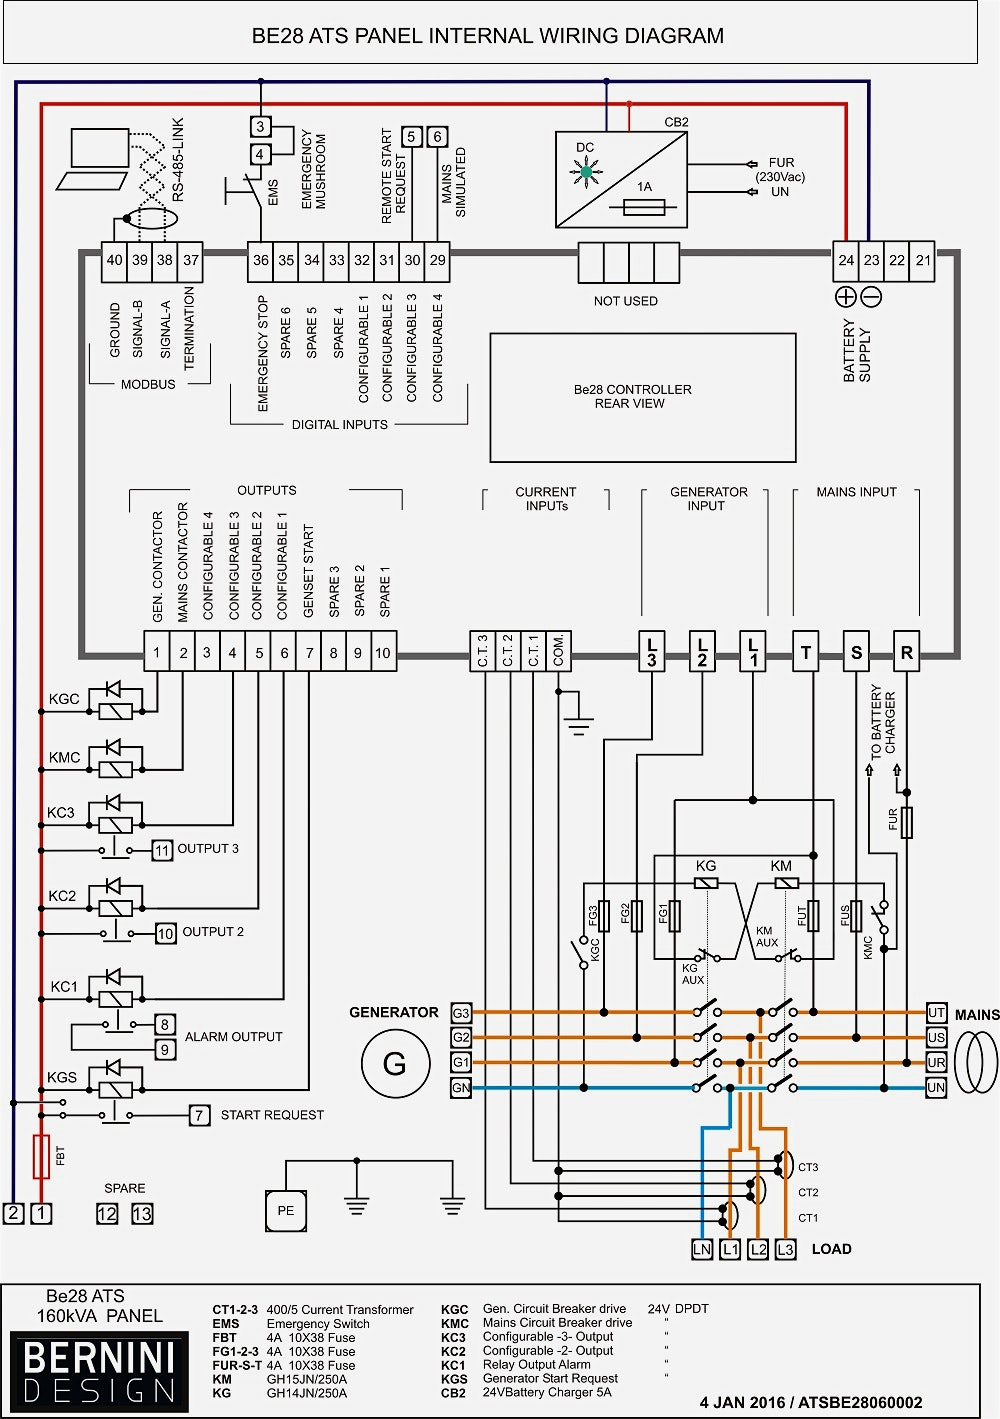 lenel access control wiring diagram Collection-Lenel 1320 Wiring Diagram Best Webtor Me For 12-n